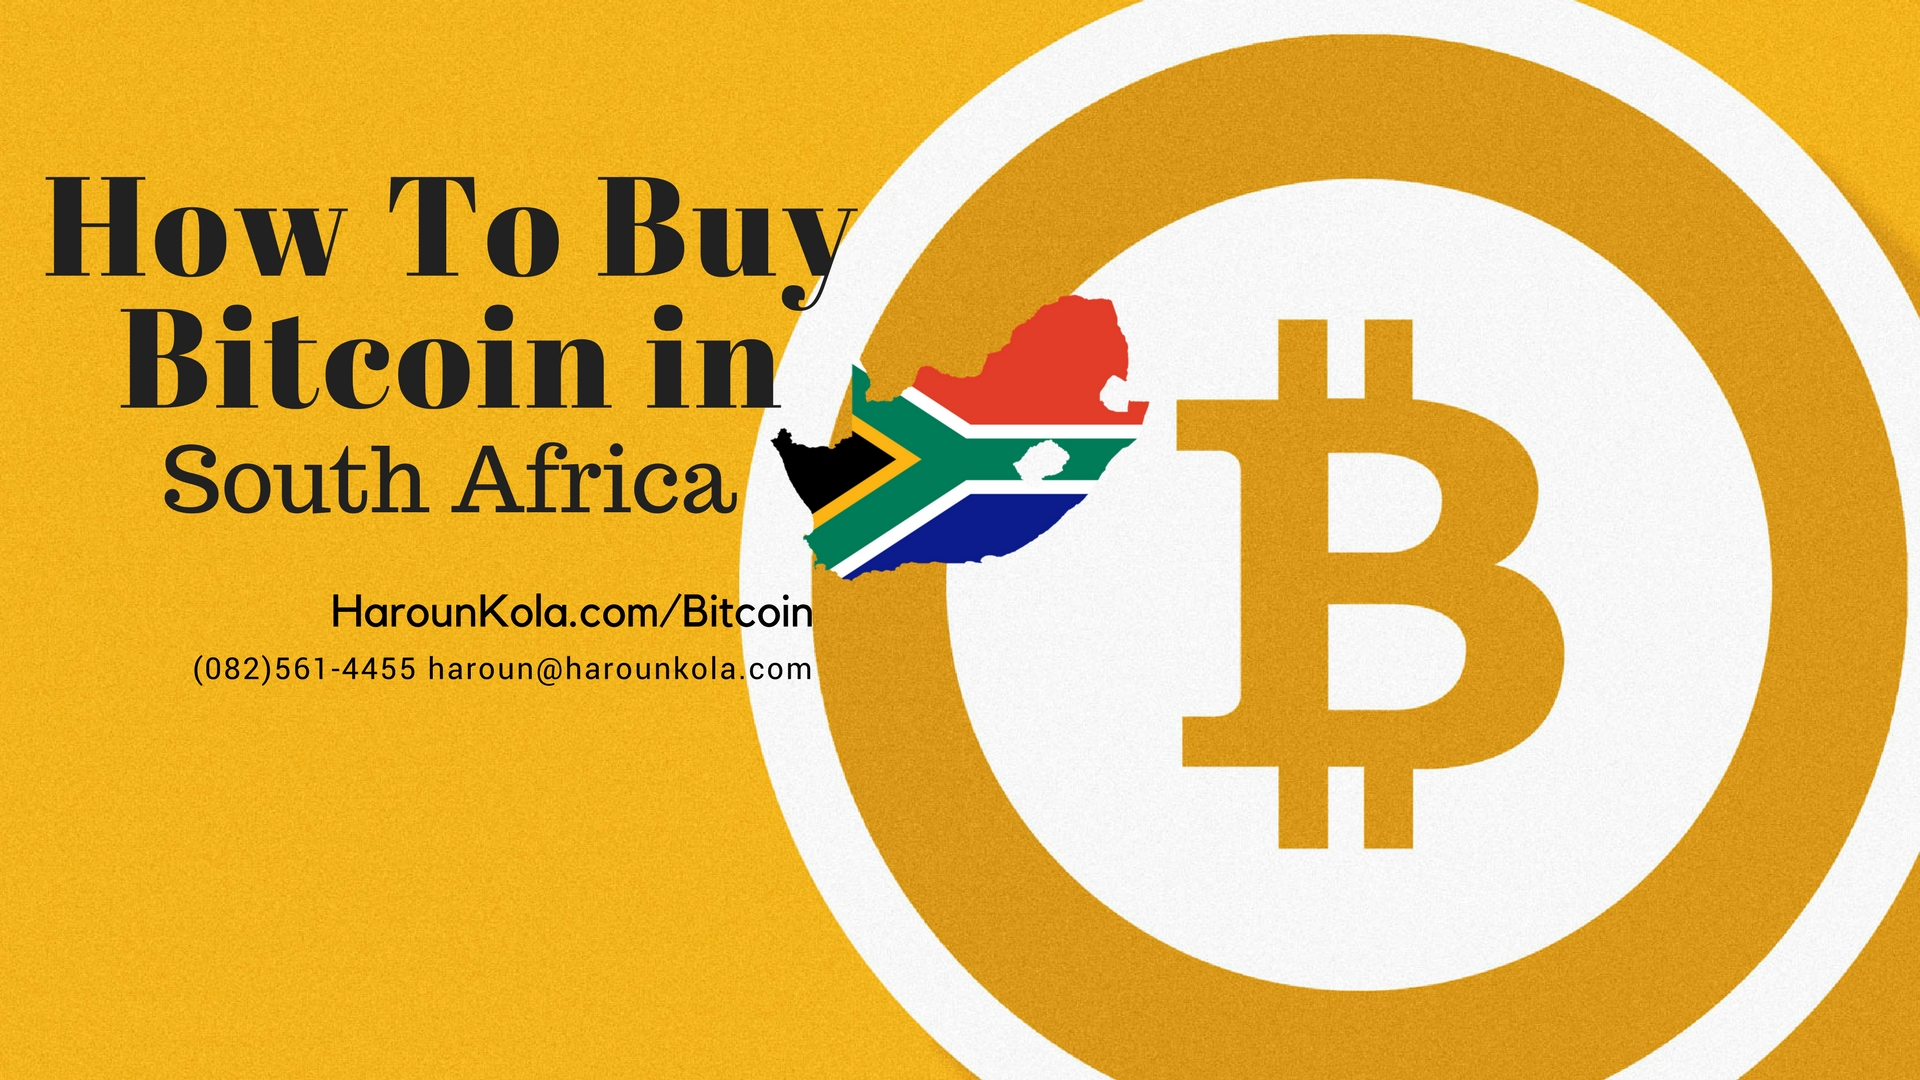 And south african bitcoin